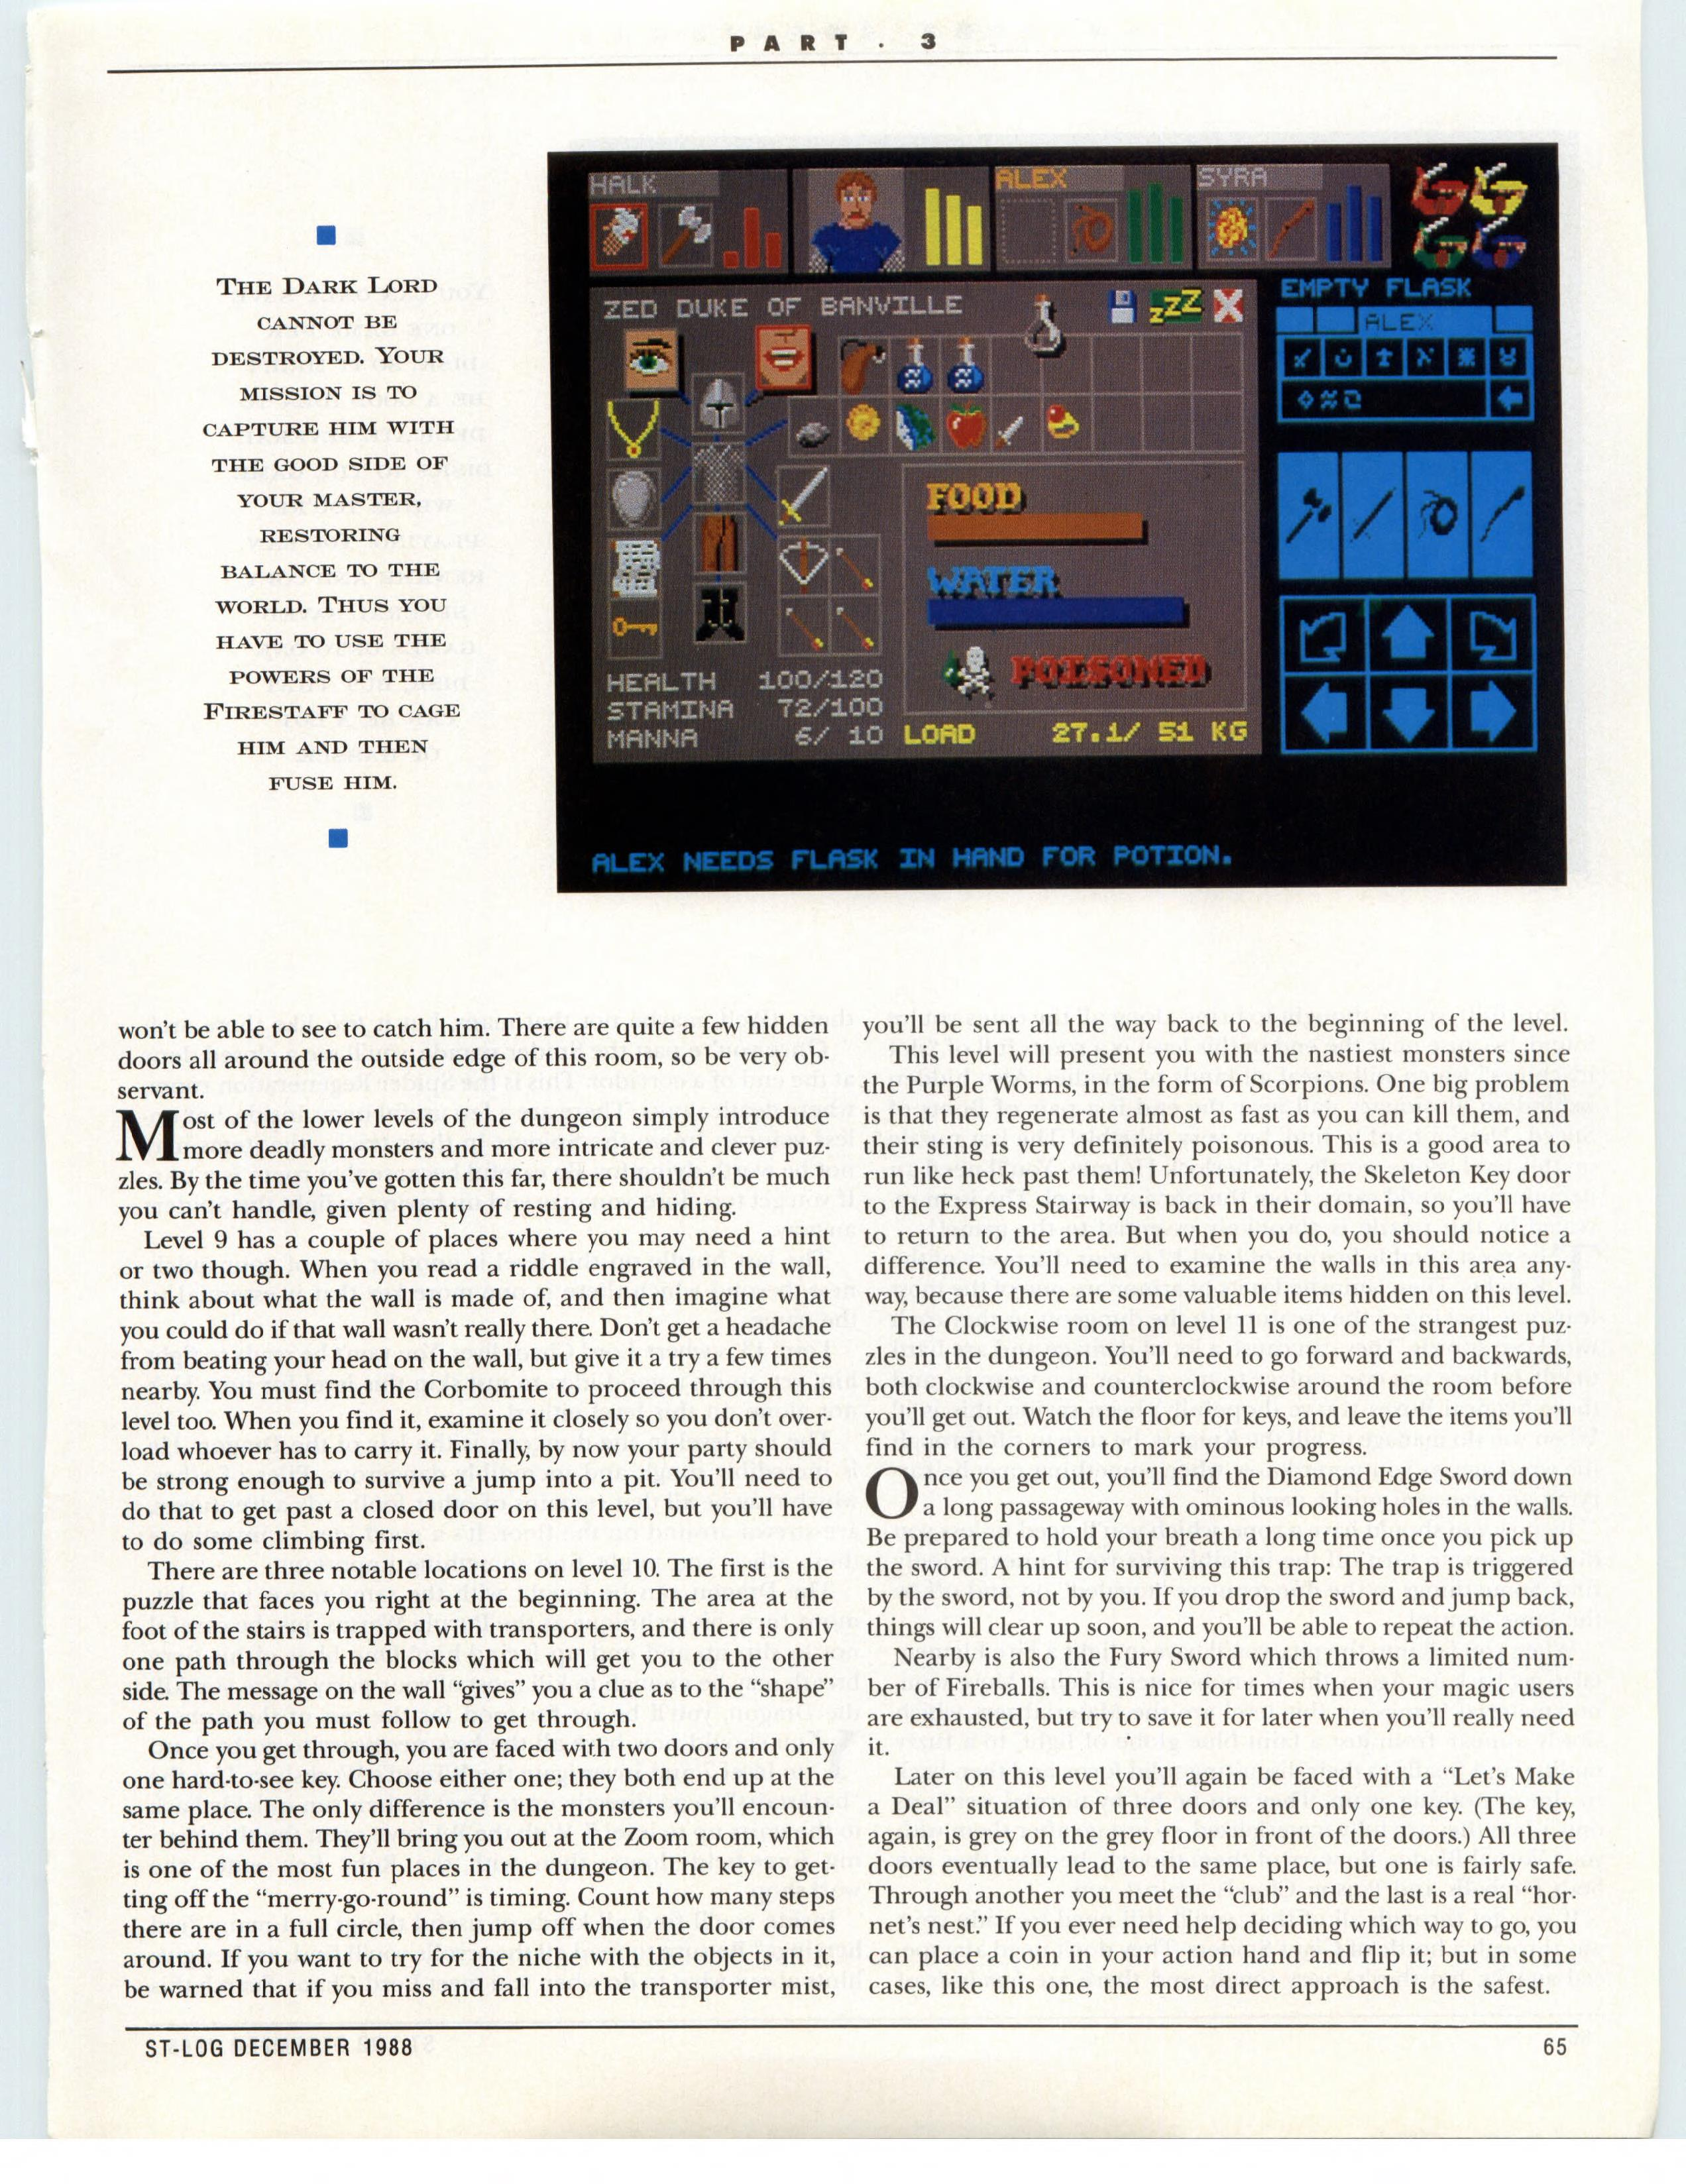 Dungeon Master for Atari ST Guide published in American magazine 'ST-Log', Issue #26 December 1988, Page 65